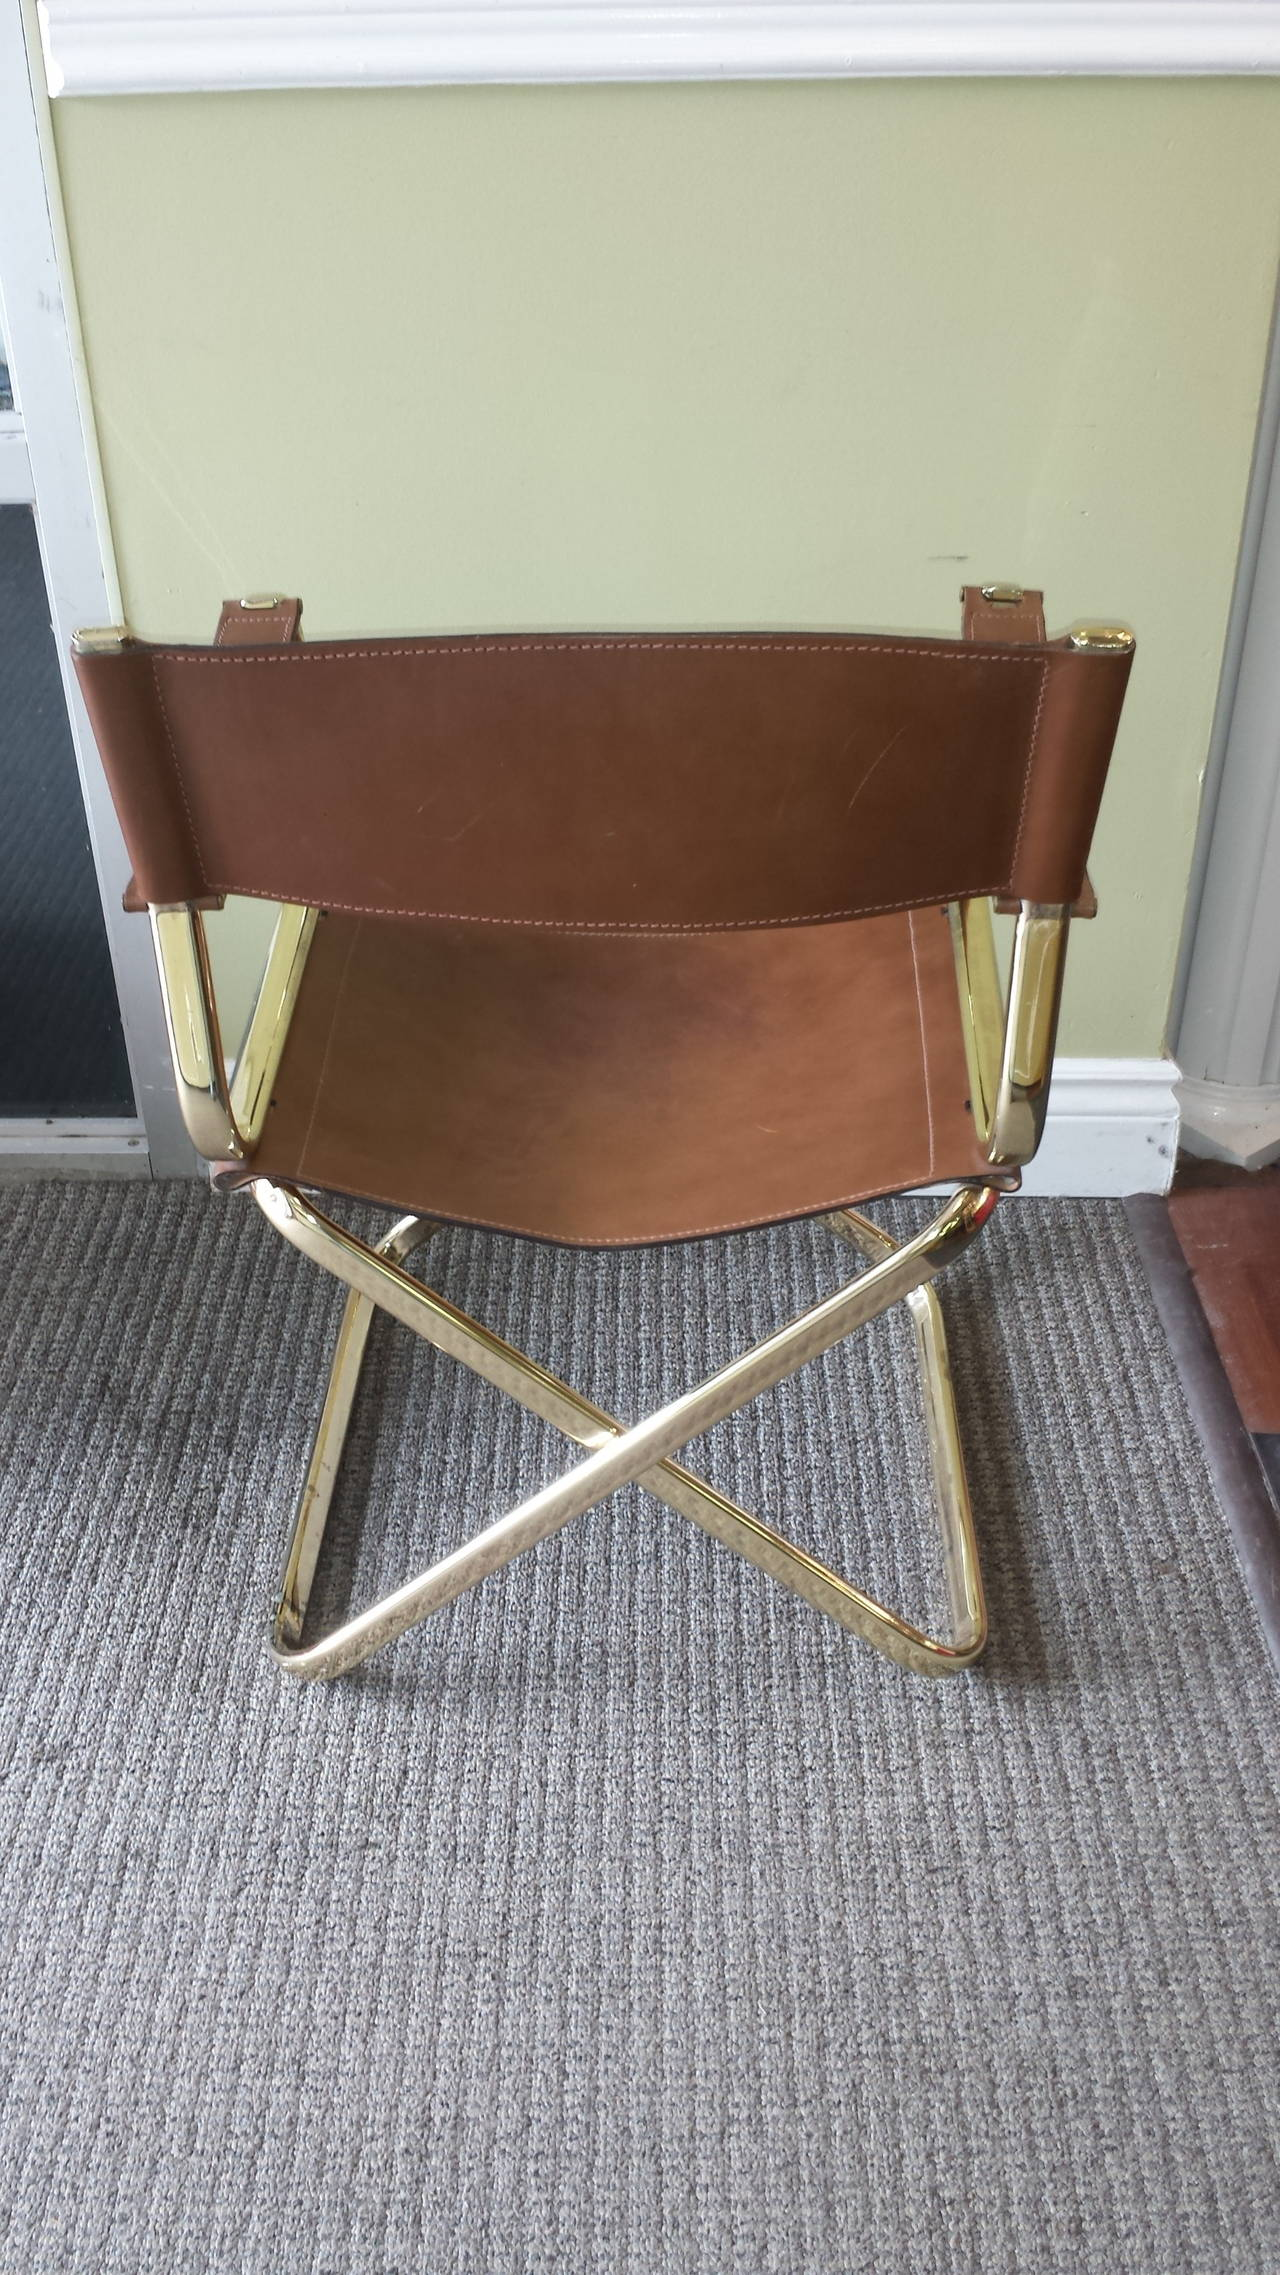 folding chair leather travel beach umbrella mid century italian designed director 39s